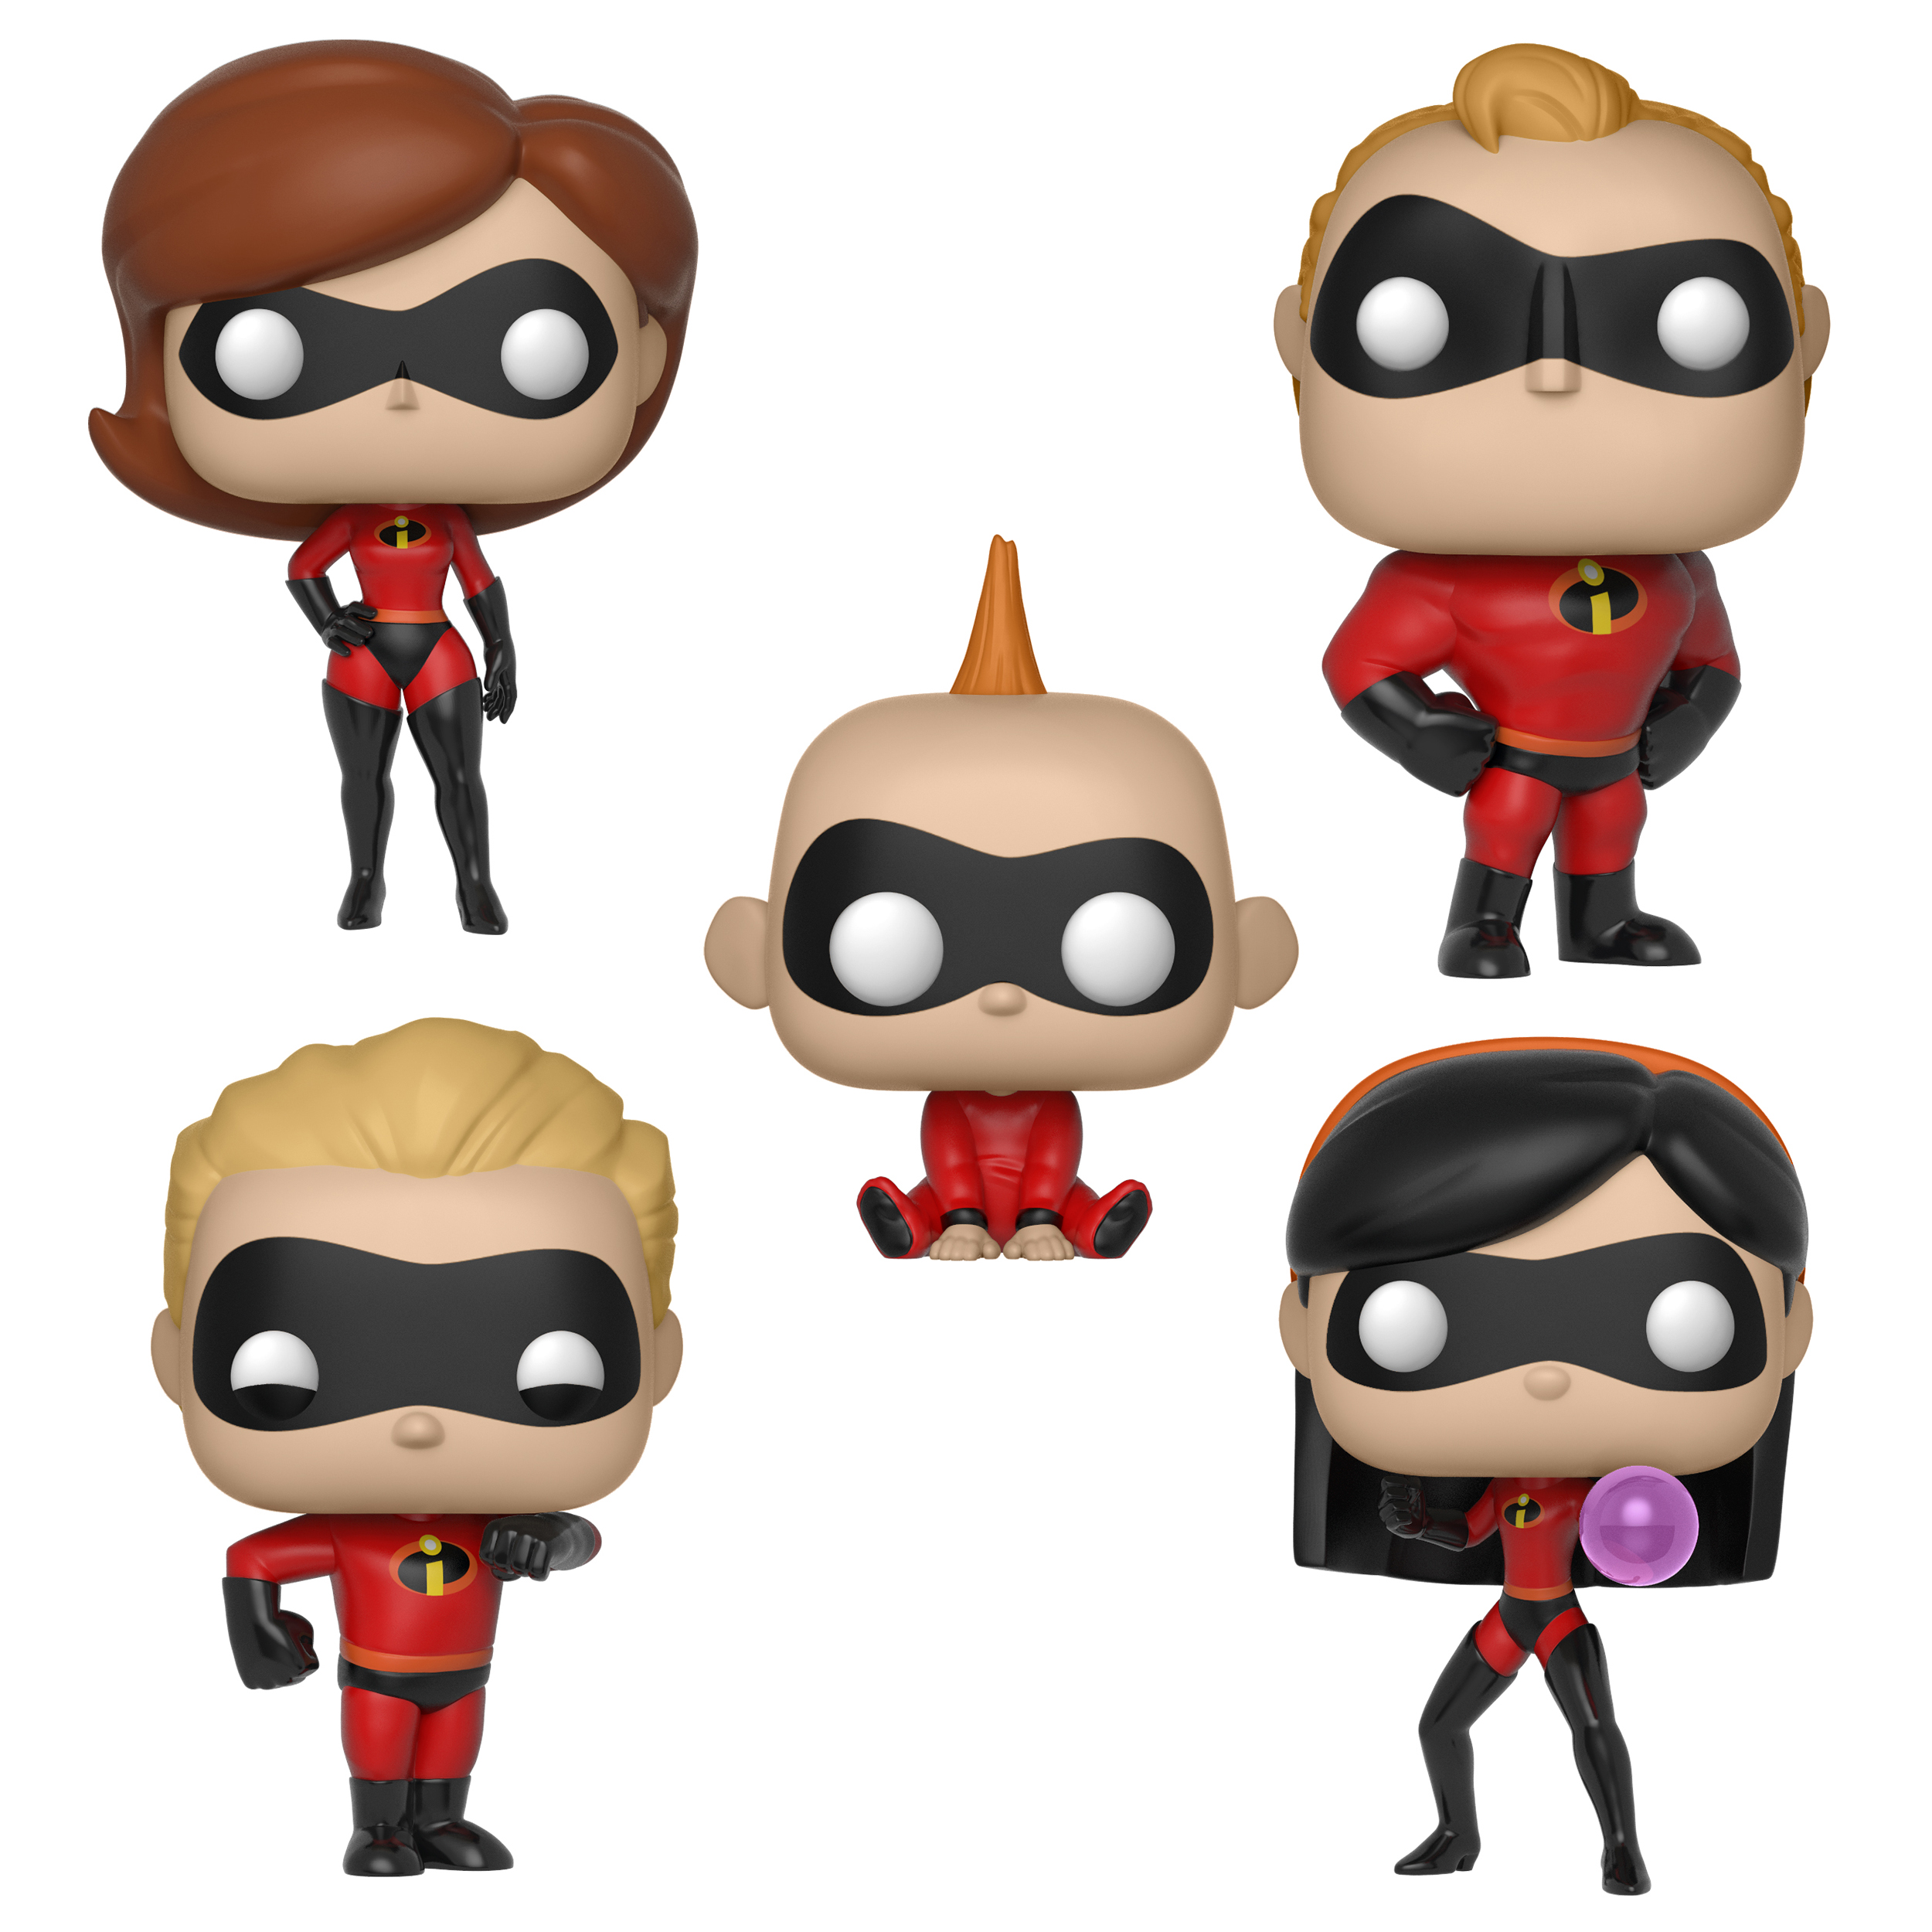 Funko POP! Disney Incredibles Series 2 Collectors Set; Elasticgirl, Mr. Incredible, Dash, Jack-Jack, & Violet (Possible Limited Chase Edition)